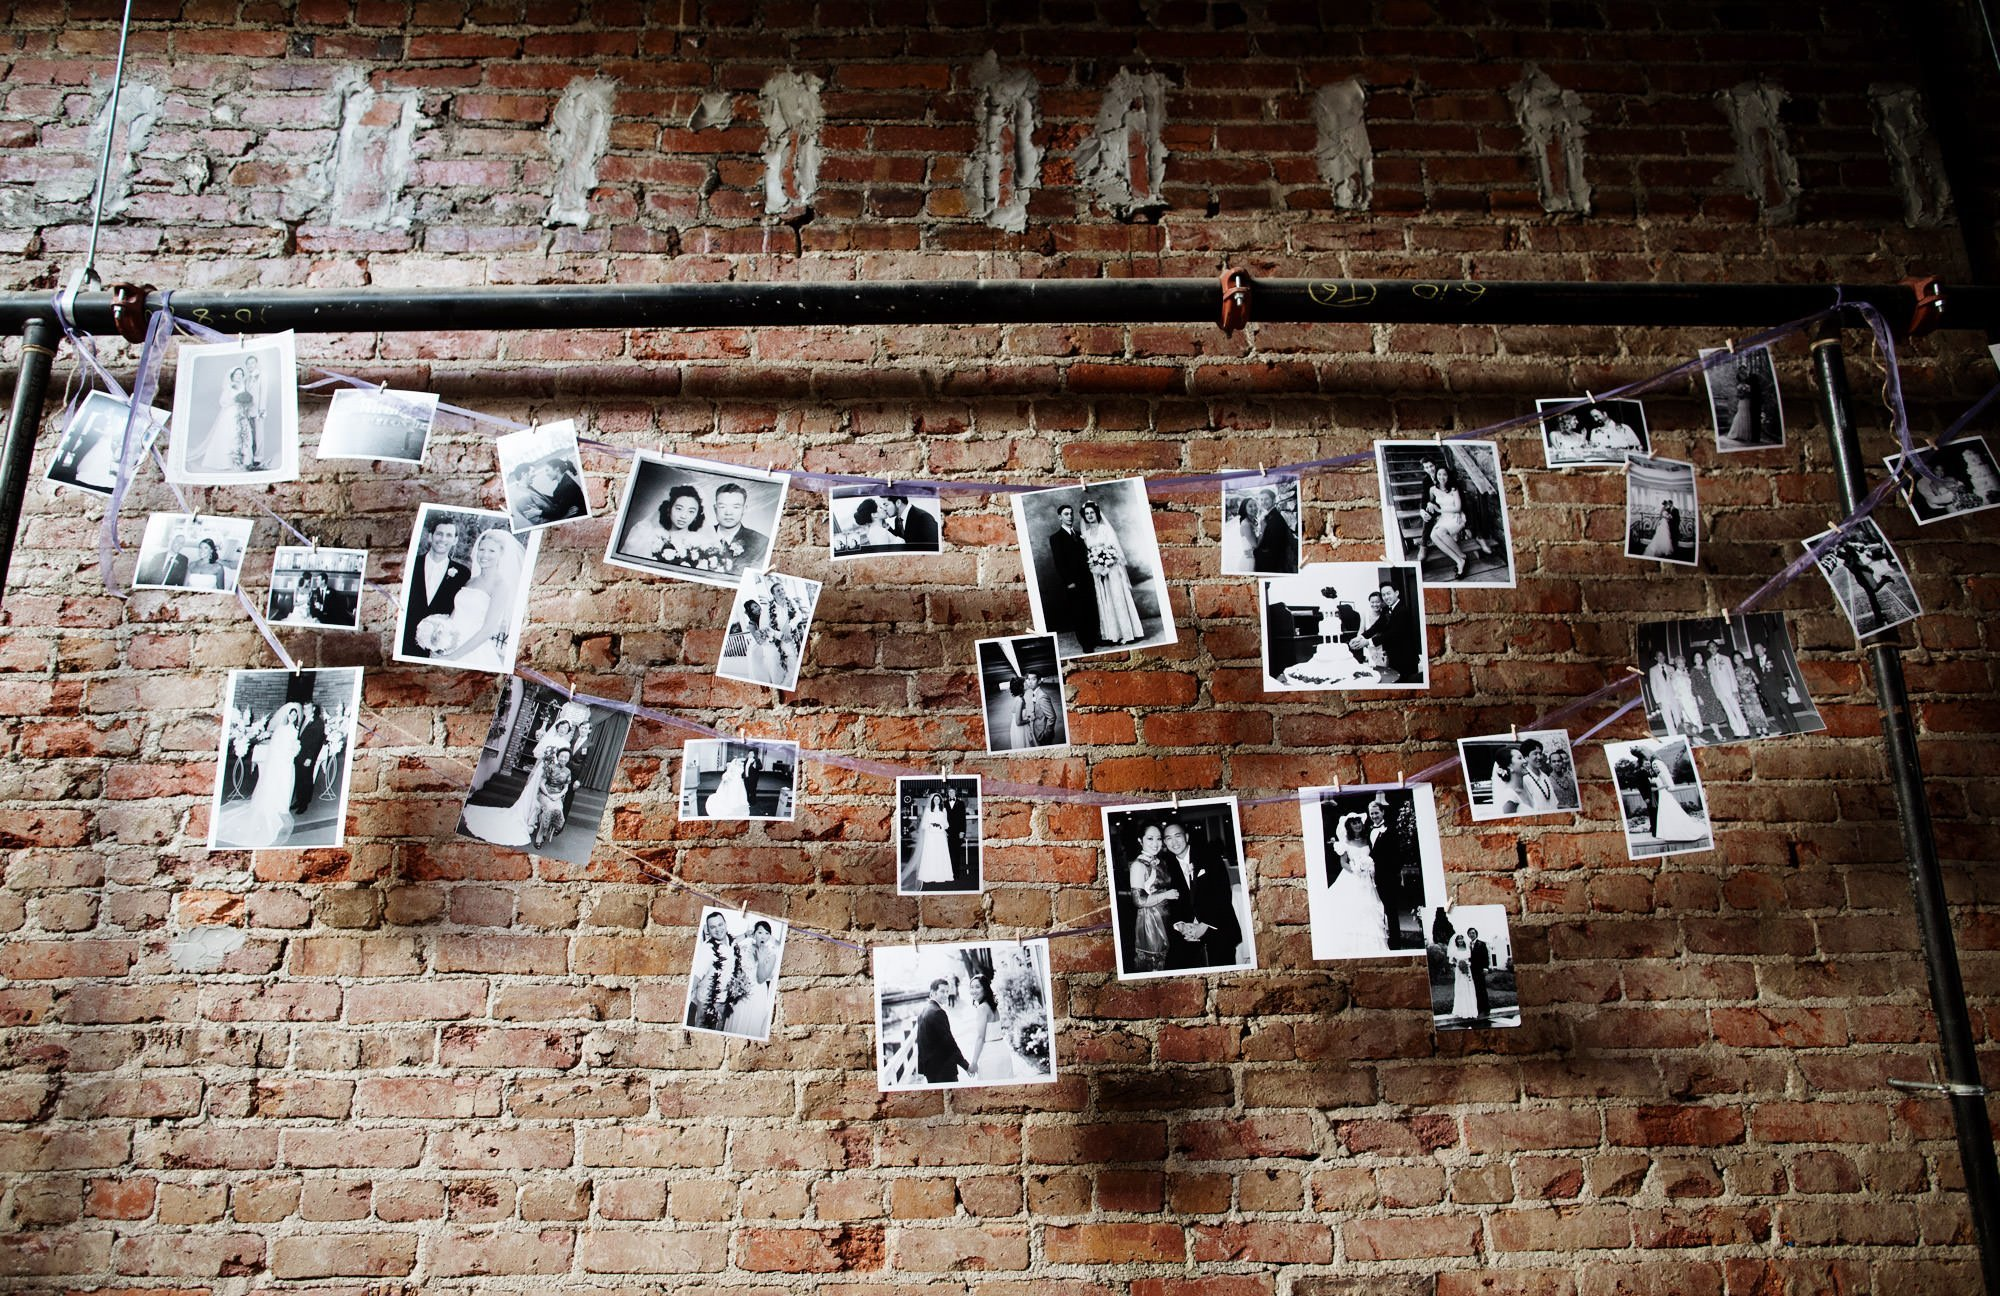 Photographs are hung against a brick wall during this Epic Yoga Studio wedding.